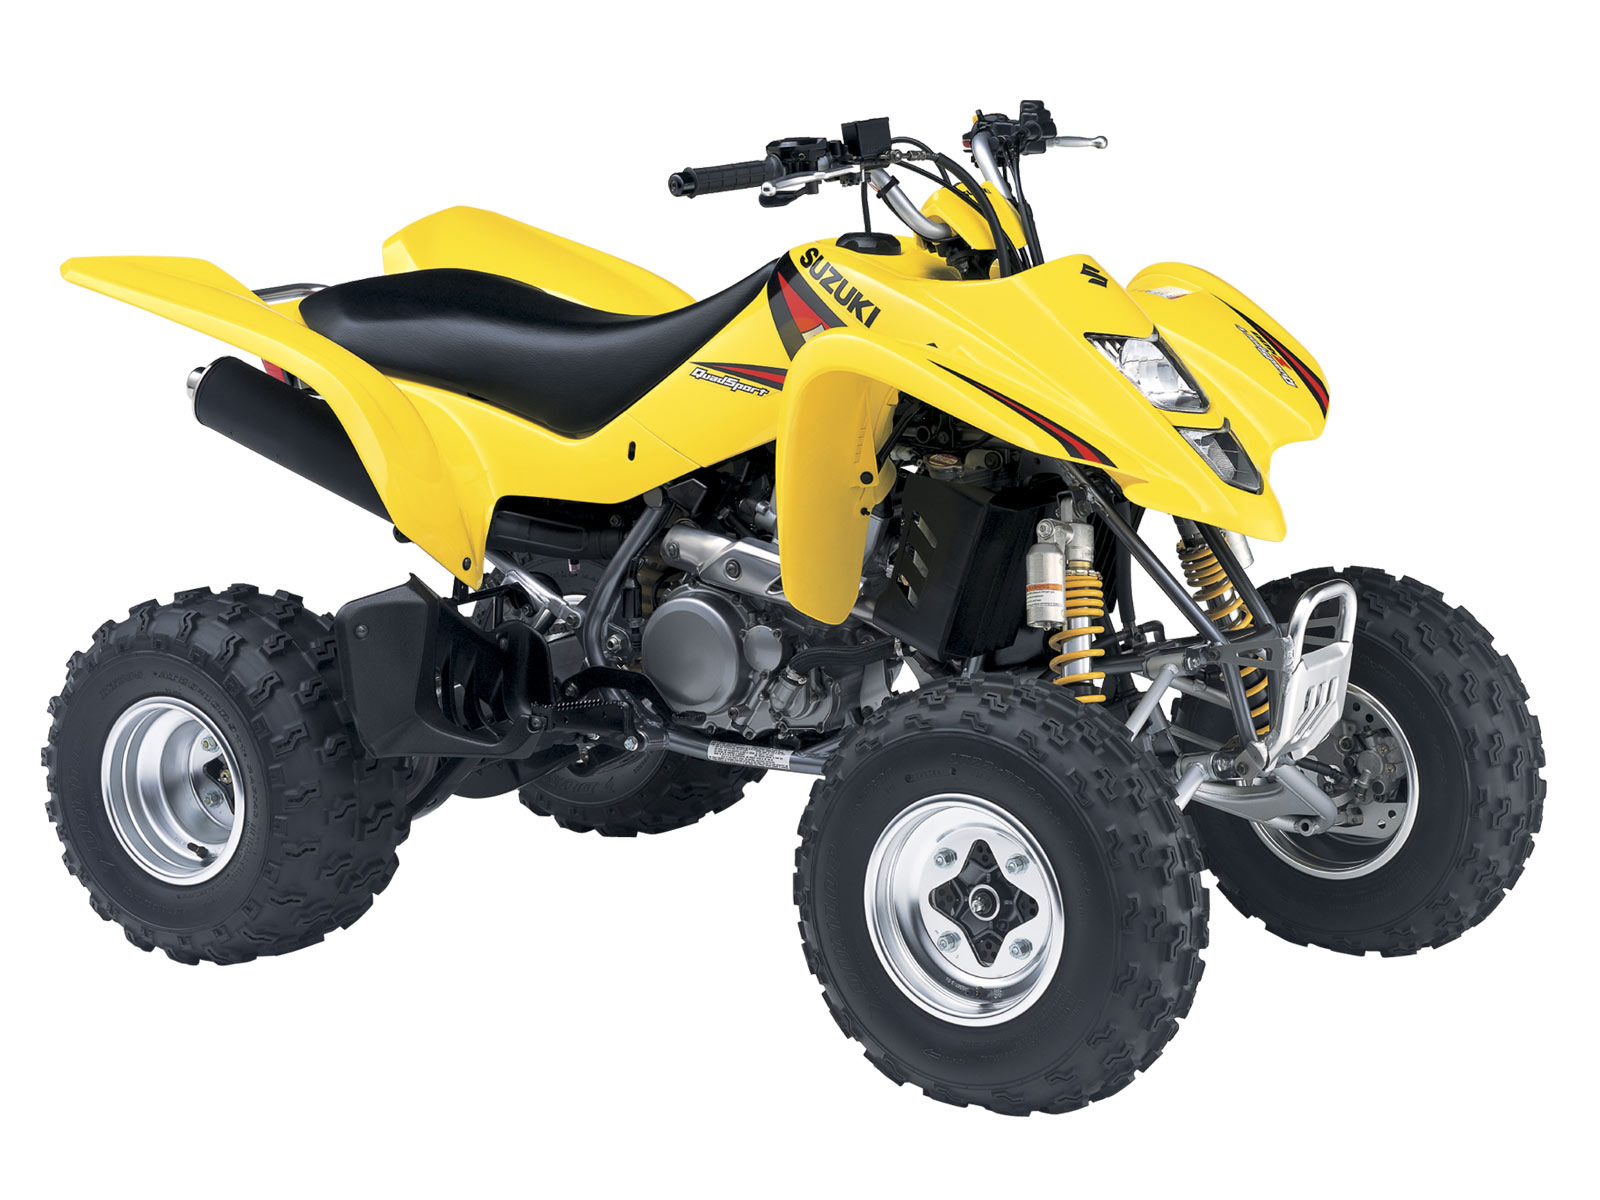 SUZUKI ATV pictures: 2005 Quadsport LTZ 400 accident lawyers-2.bp.blogspot.com